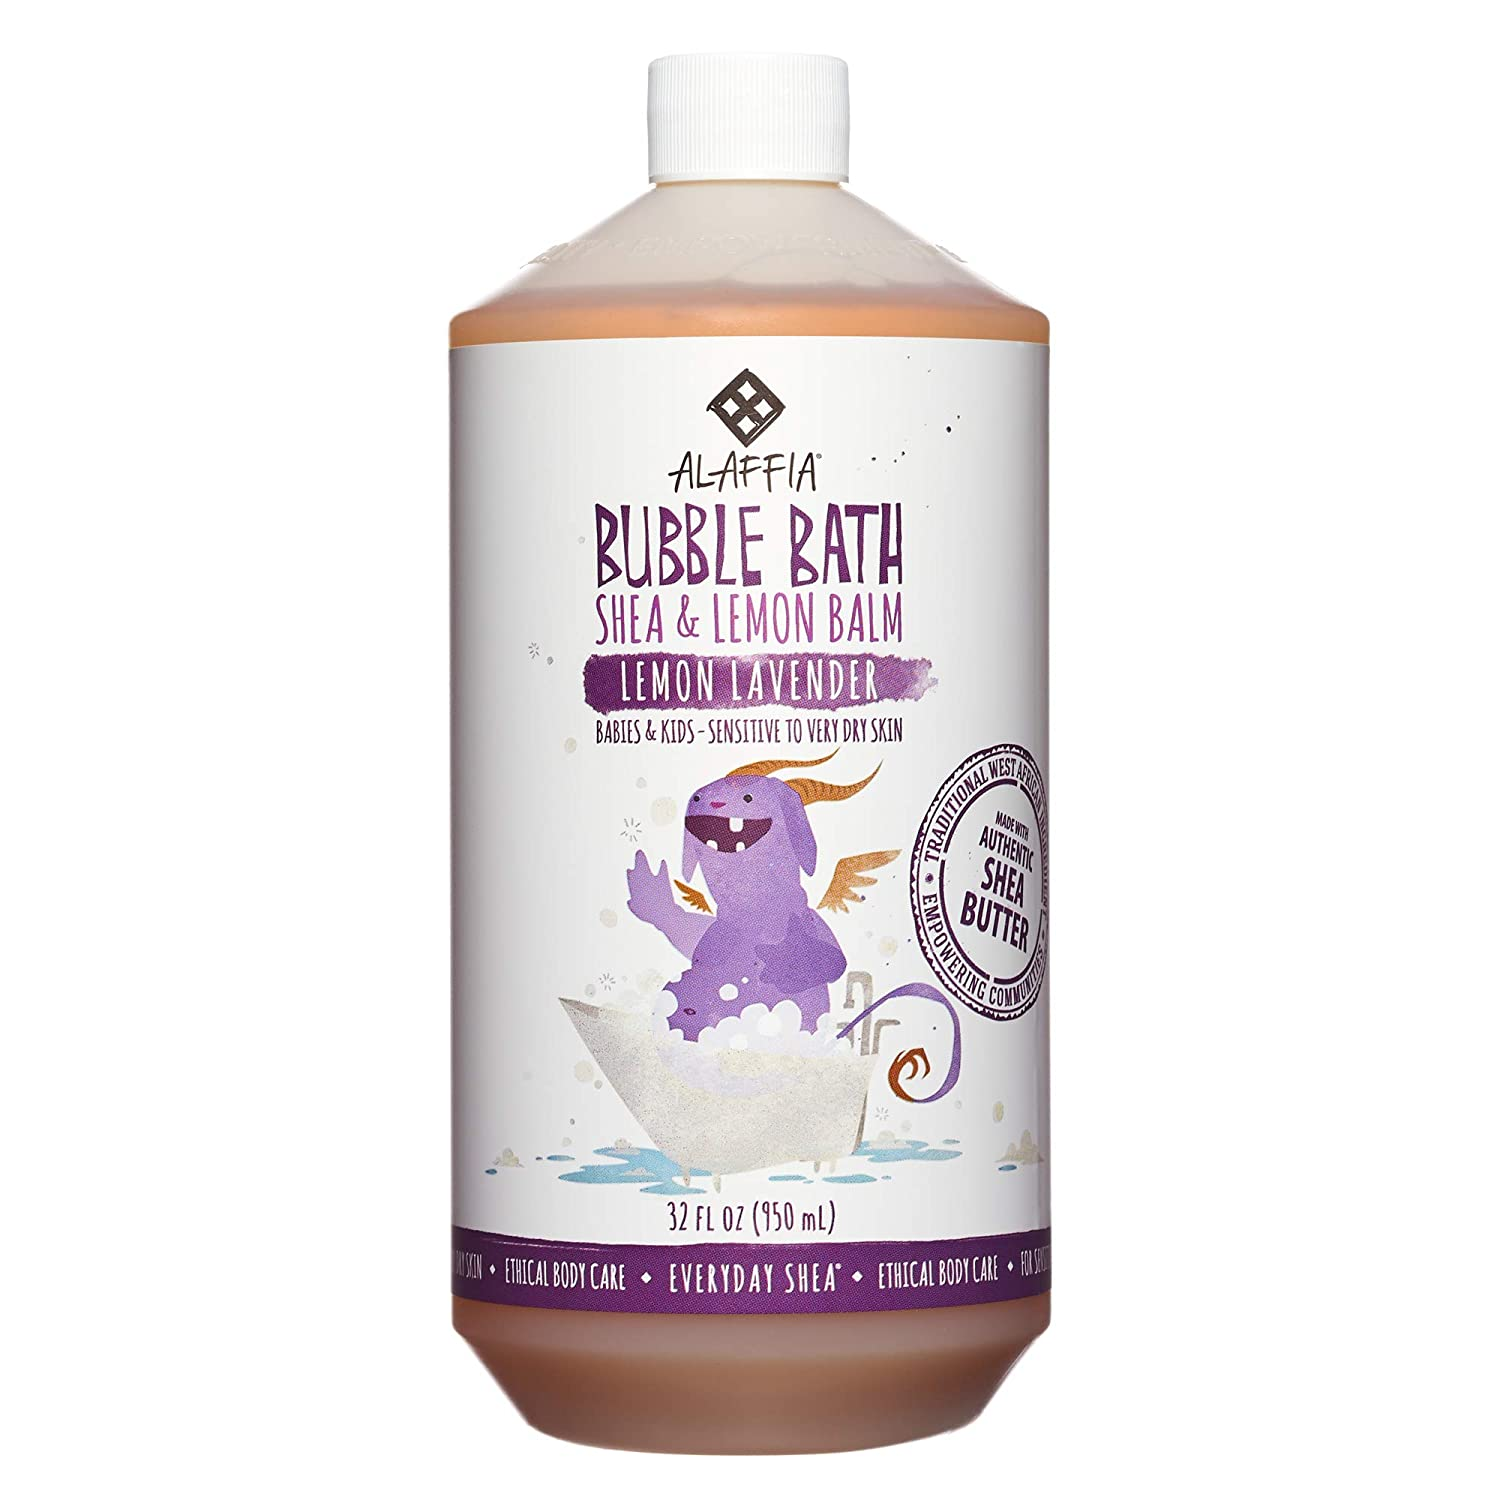 Everyday Shea Bubble Bath for Babies & Kids - Lemon Lavender